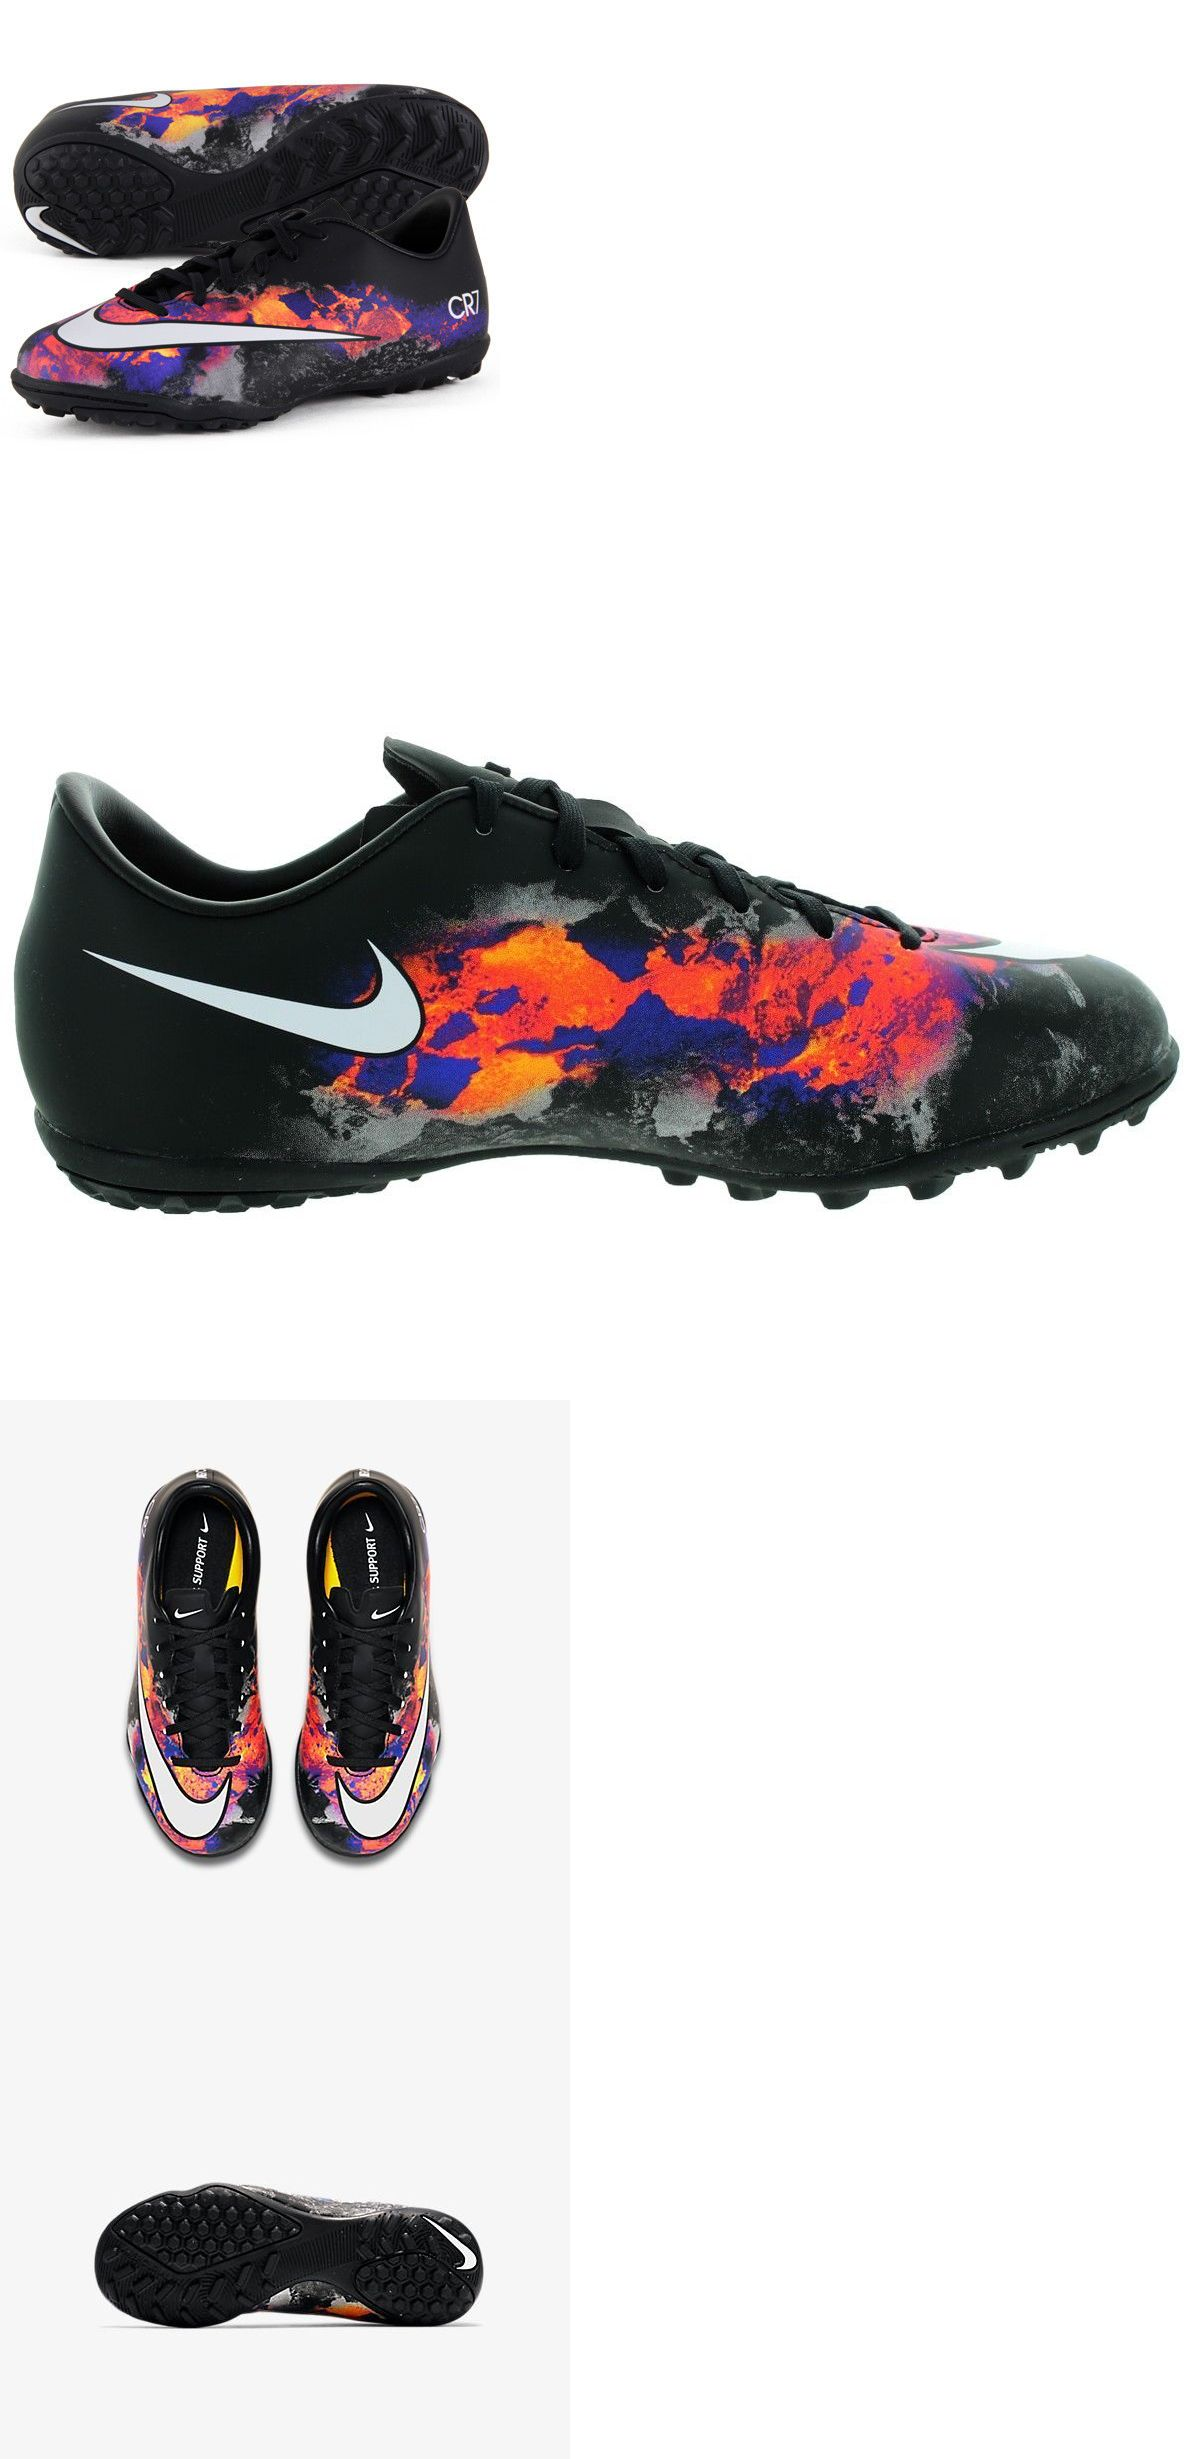 83d83d56ce1 ... best price youth 159177 nike jr. mercurial victory v tf turf soccer  shoes size 2y